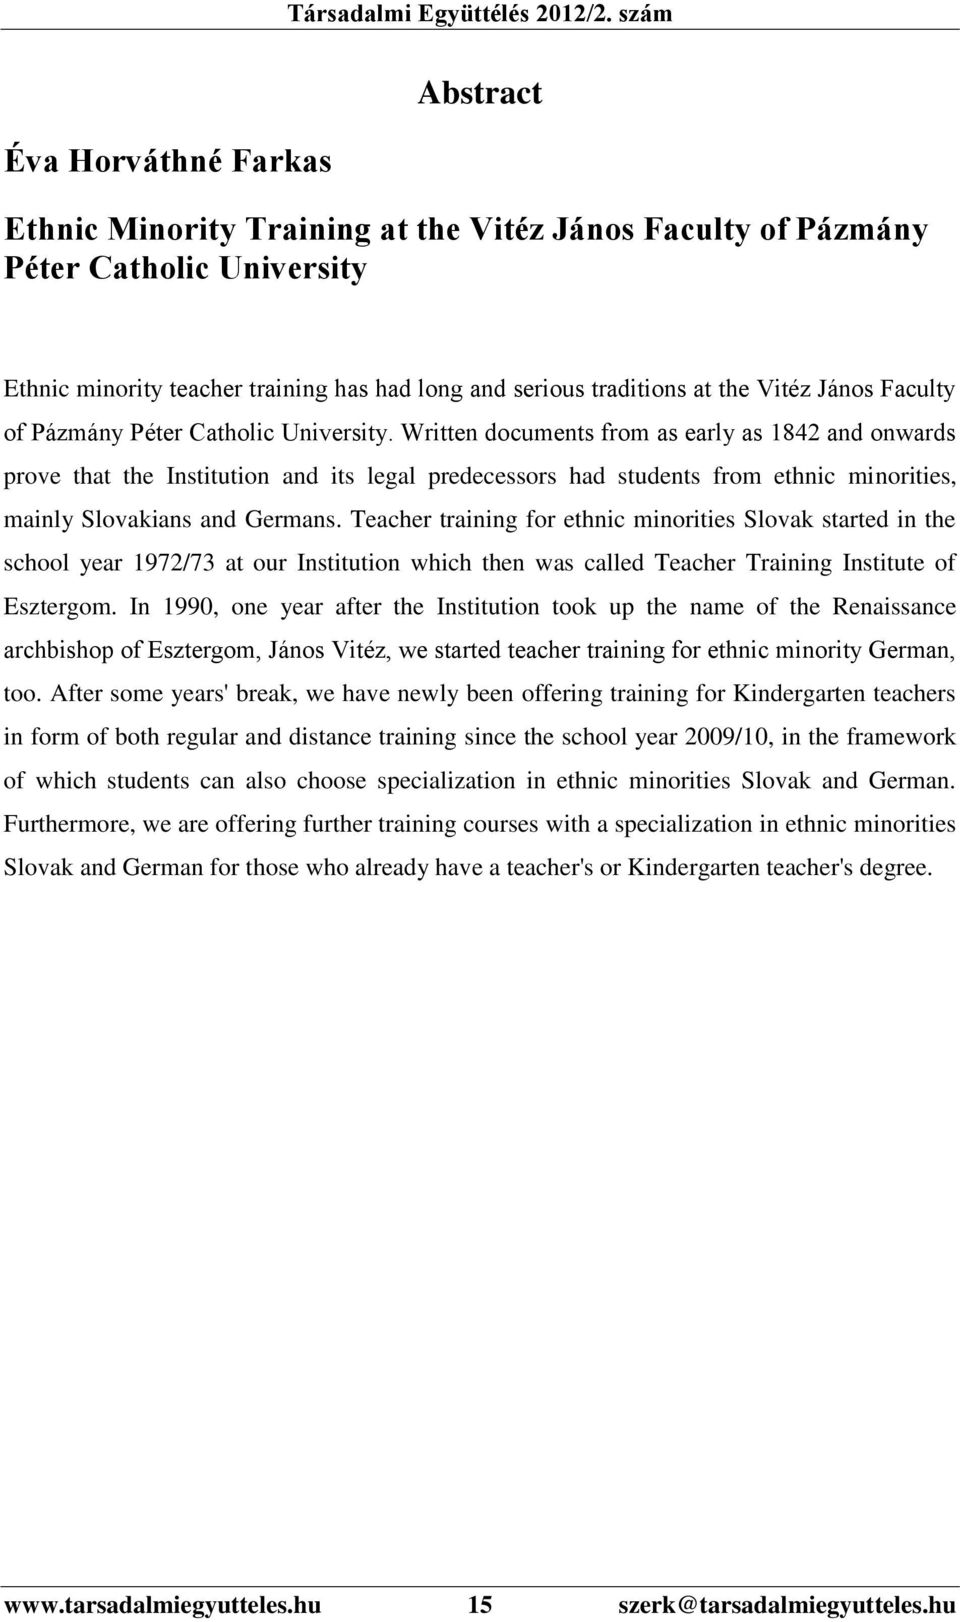 Written documents from as early as 1842 and onwards prove that the Institution and its legal predecessors had students from ethnic minorities, mainly Slovakians and Germans.